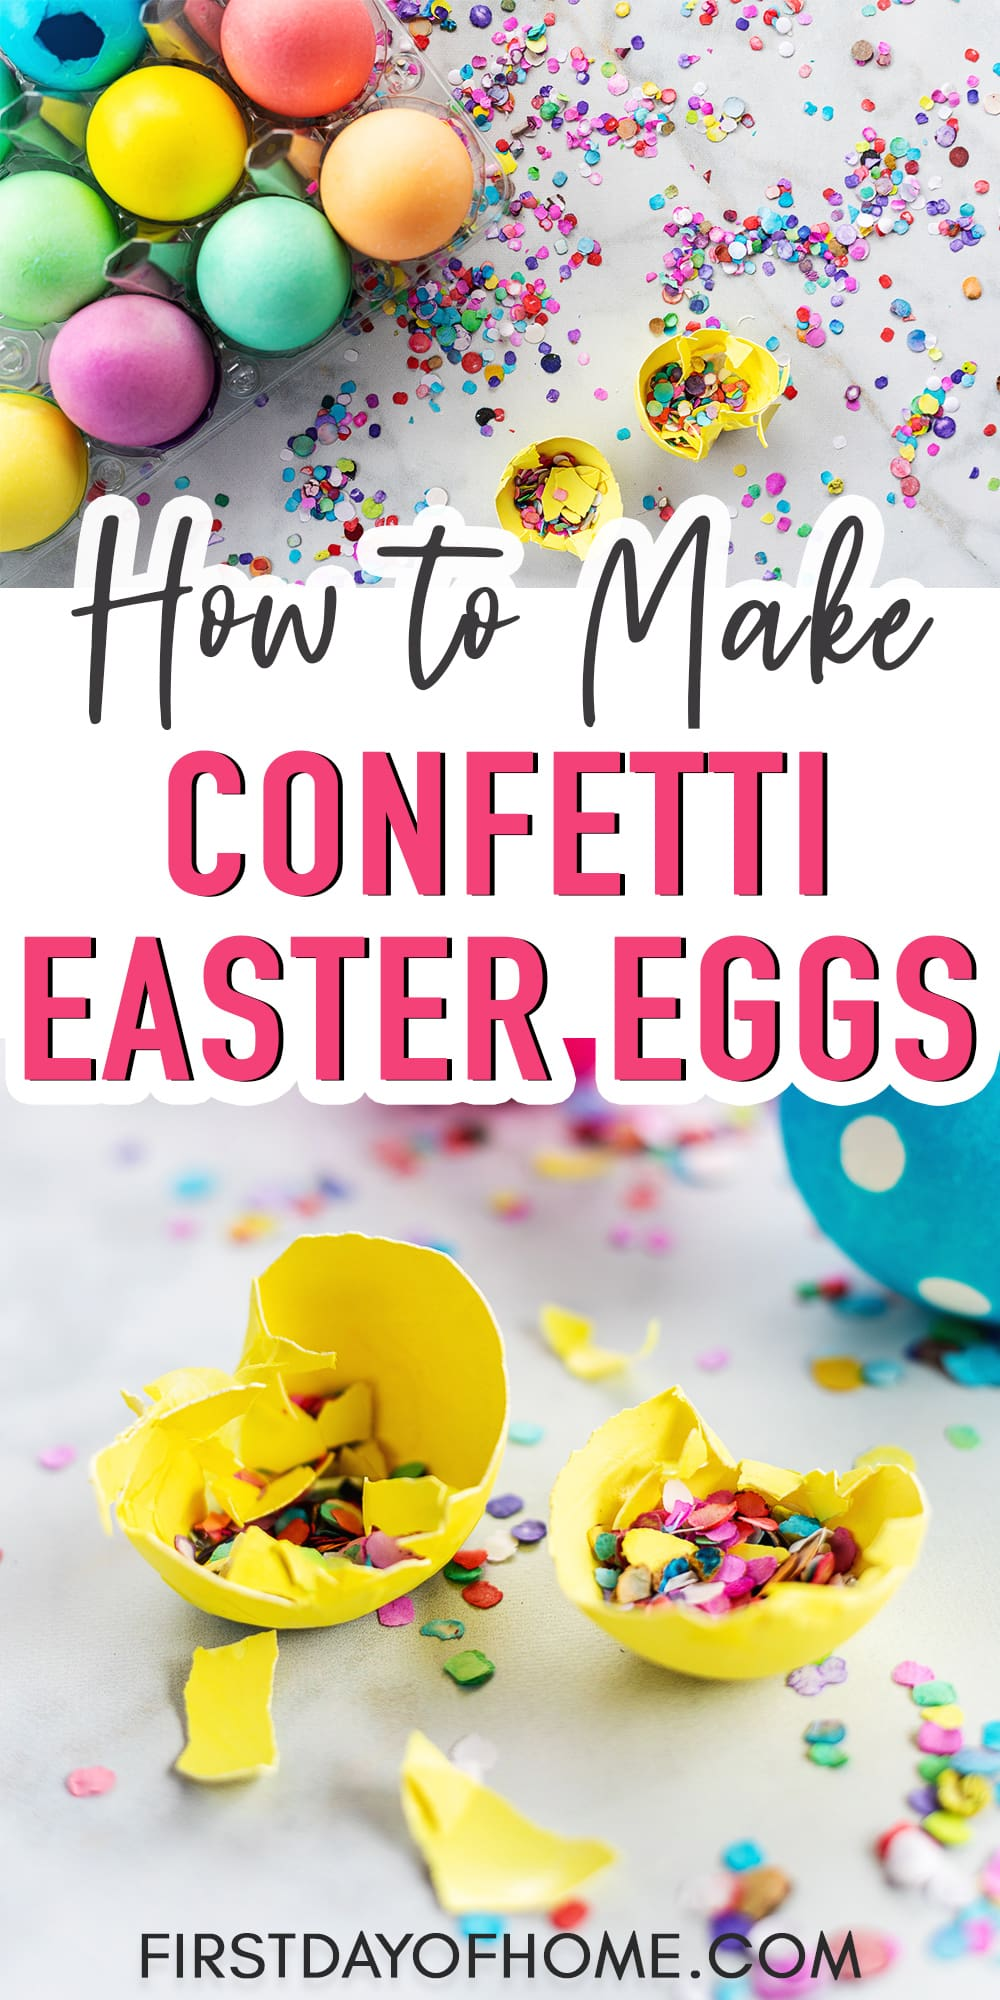 "Confetti filled decorated Easter eggs with text overlay reading ""How to Make Confetti Easter Eggs"""